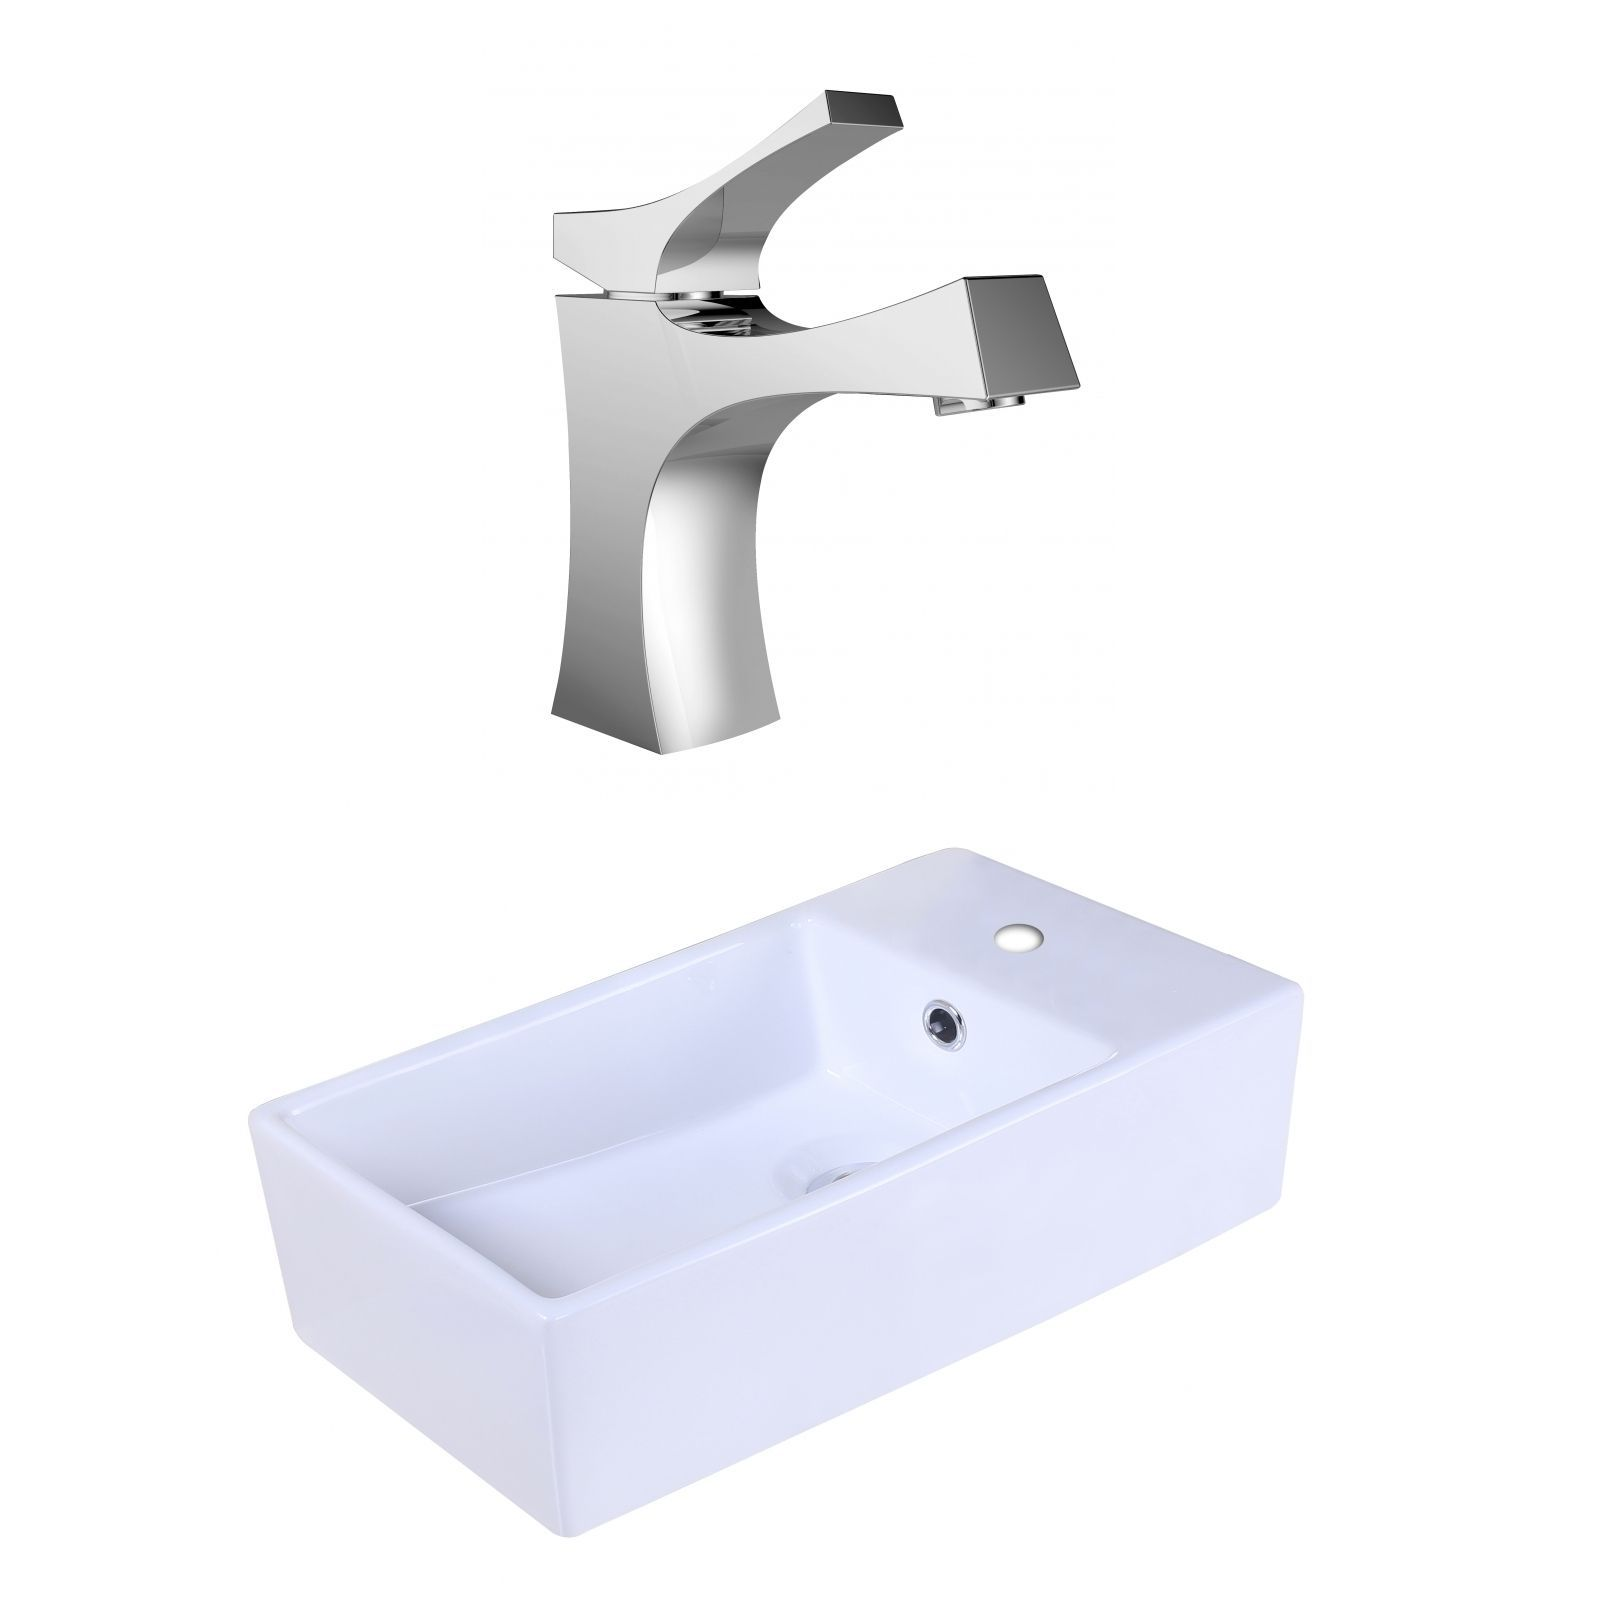 American Imaginations 18.9-in. W x 9.45-in. D Rectangle Vessel Set In Color With Single Hole Cupc Faucet